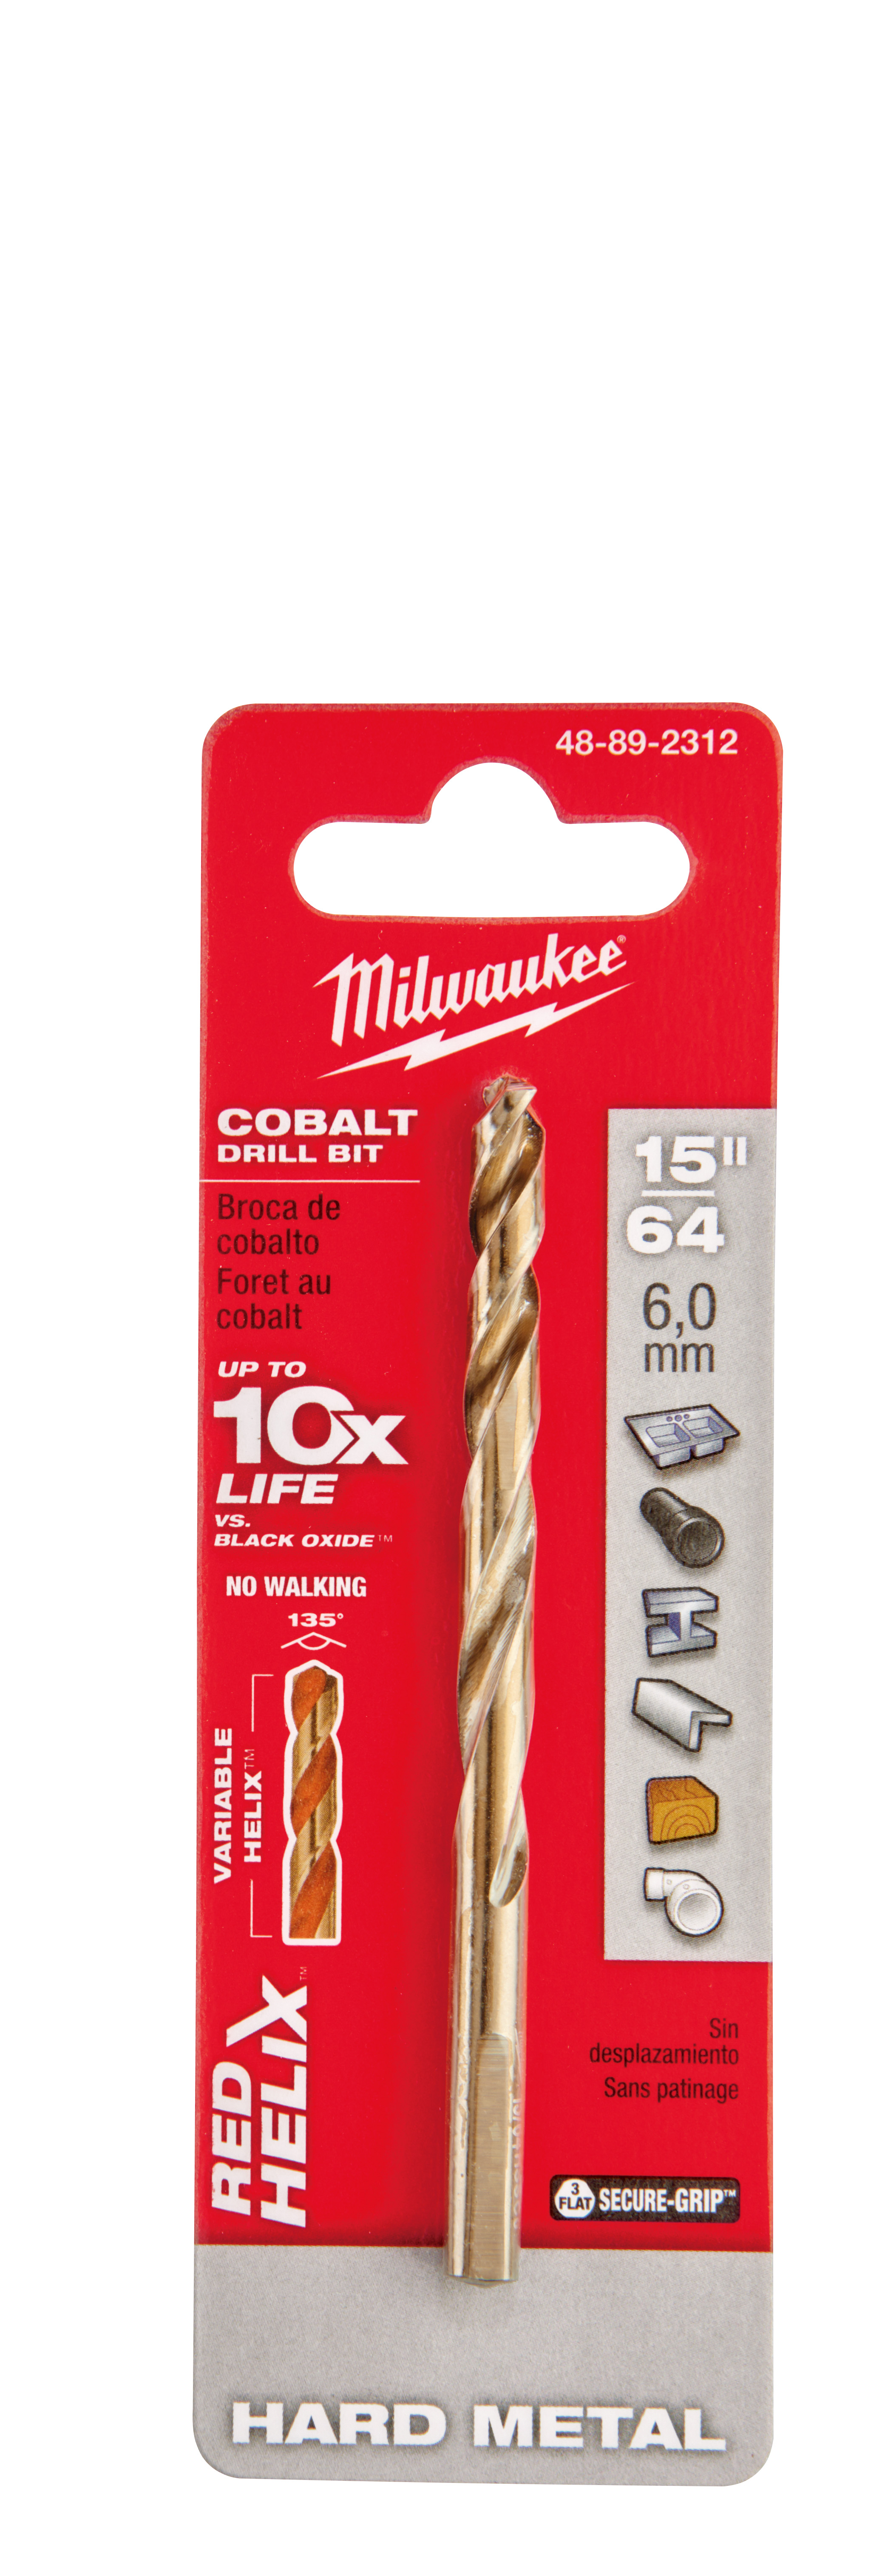 Milwaukee® 48-89-2312 RED HELIX™ Jobber Length Twist Drill Bit, 15/64 in Drill - Fraction, 0.2344 in Drill - Decimal Inch, 135 deg Point, High Speed Cobalt, Uncoated